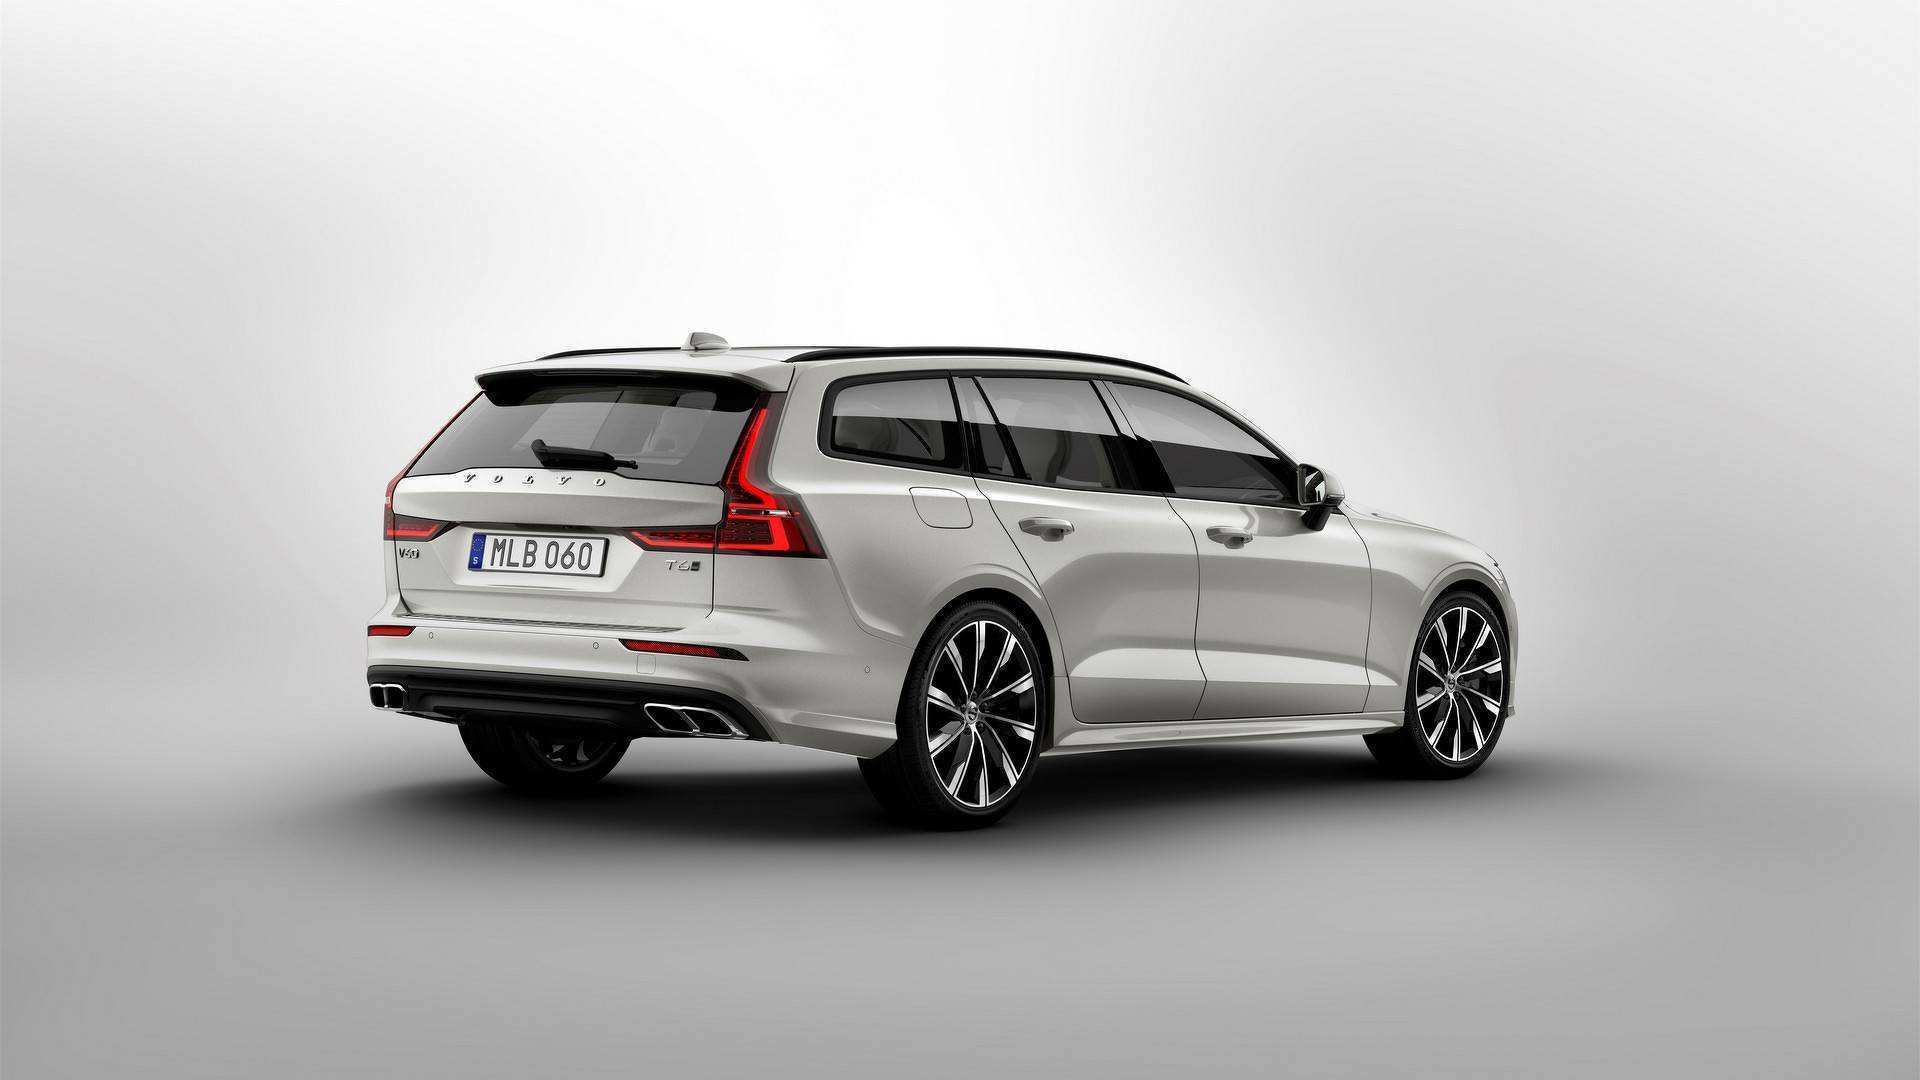 62 The Best 2019 Volvo V60 Cross Country Picture